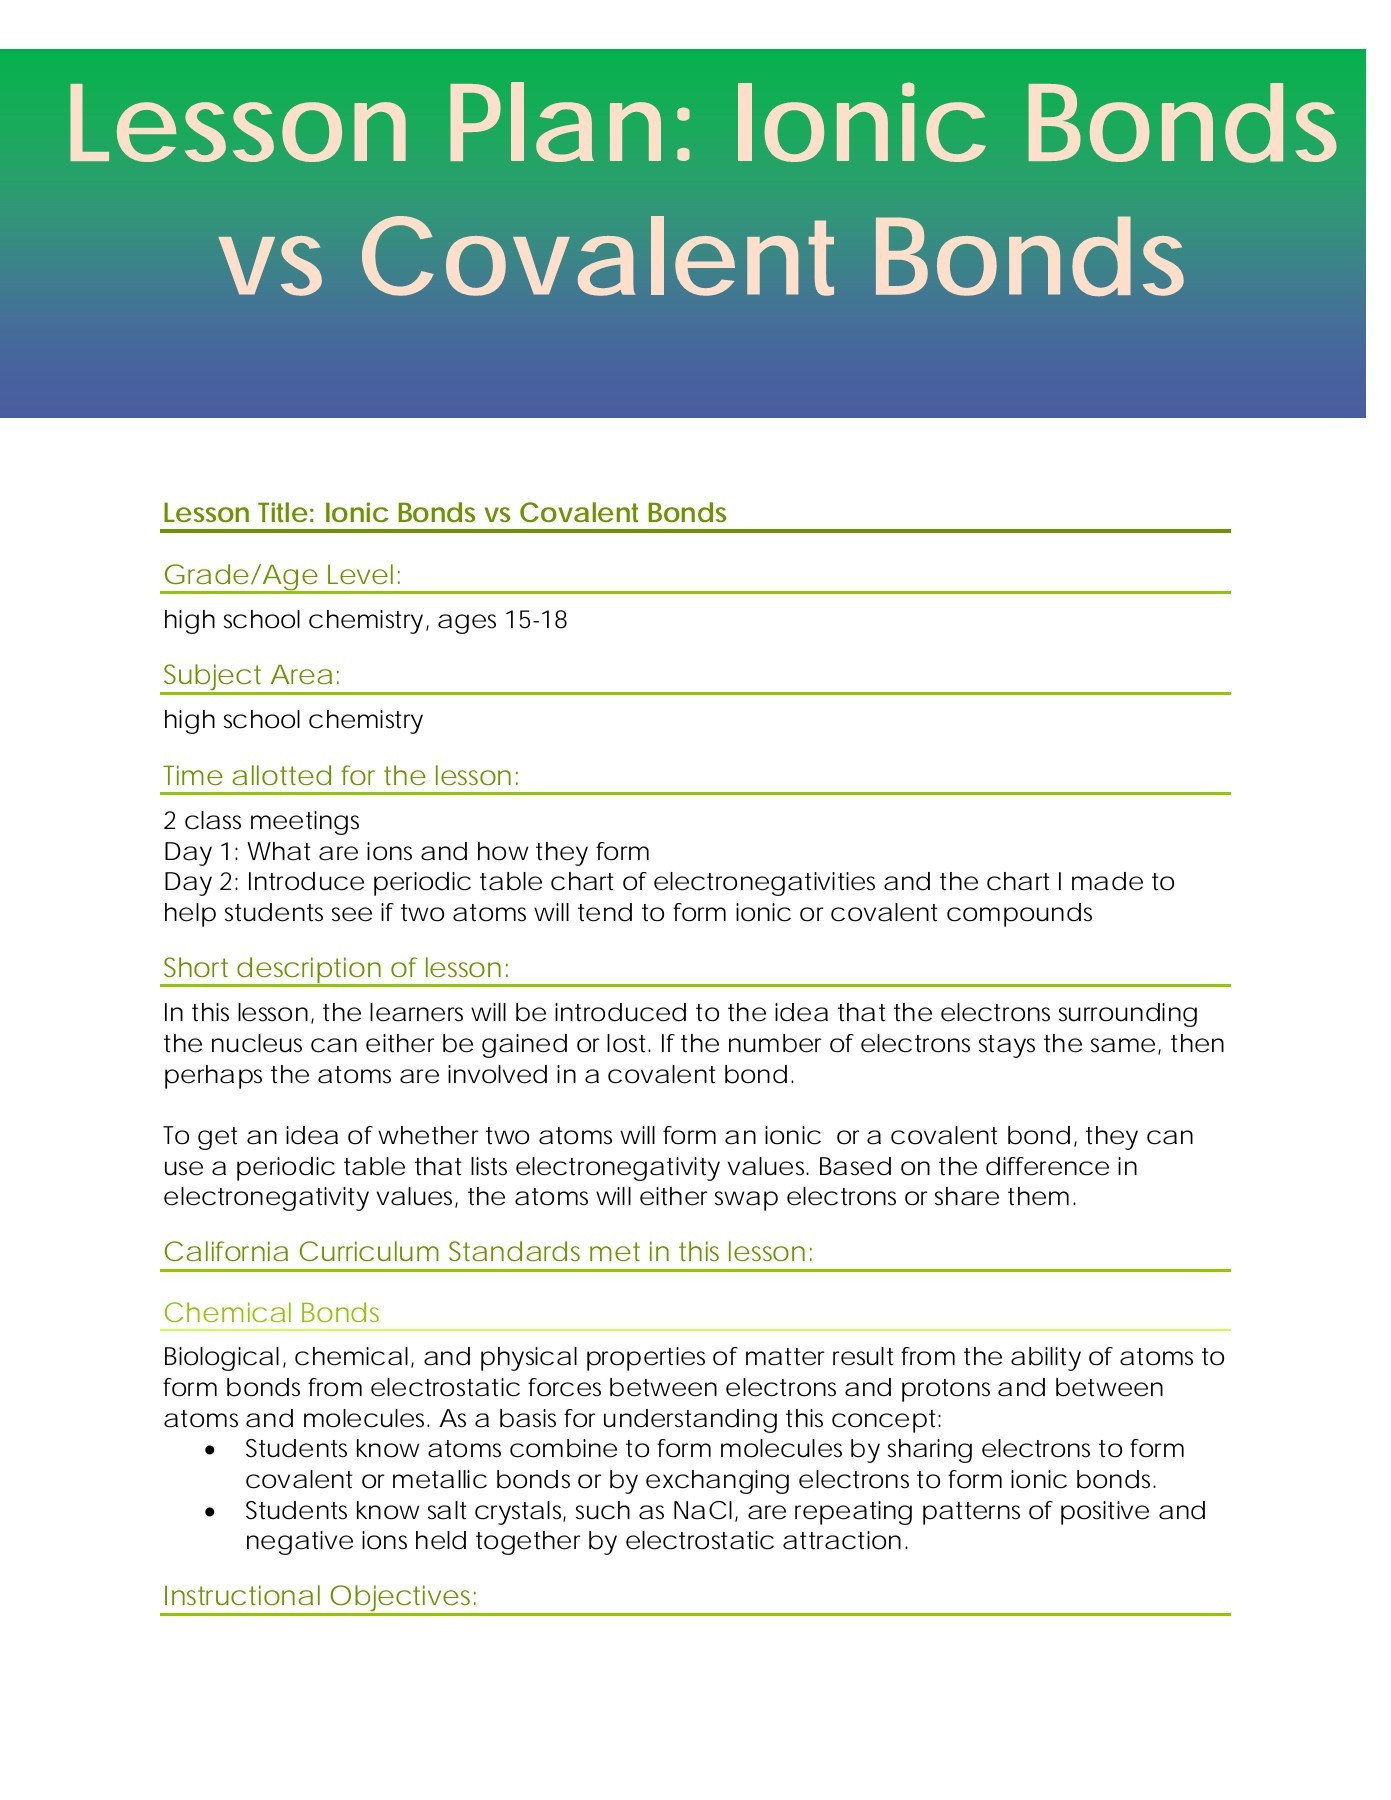 Ionic and Covalent Bonds Worksheet Lesson Plan Ionic Bonds Vs Covalent Bonds for Students